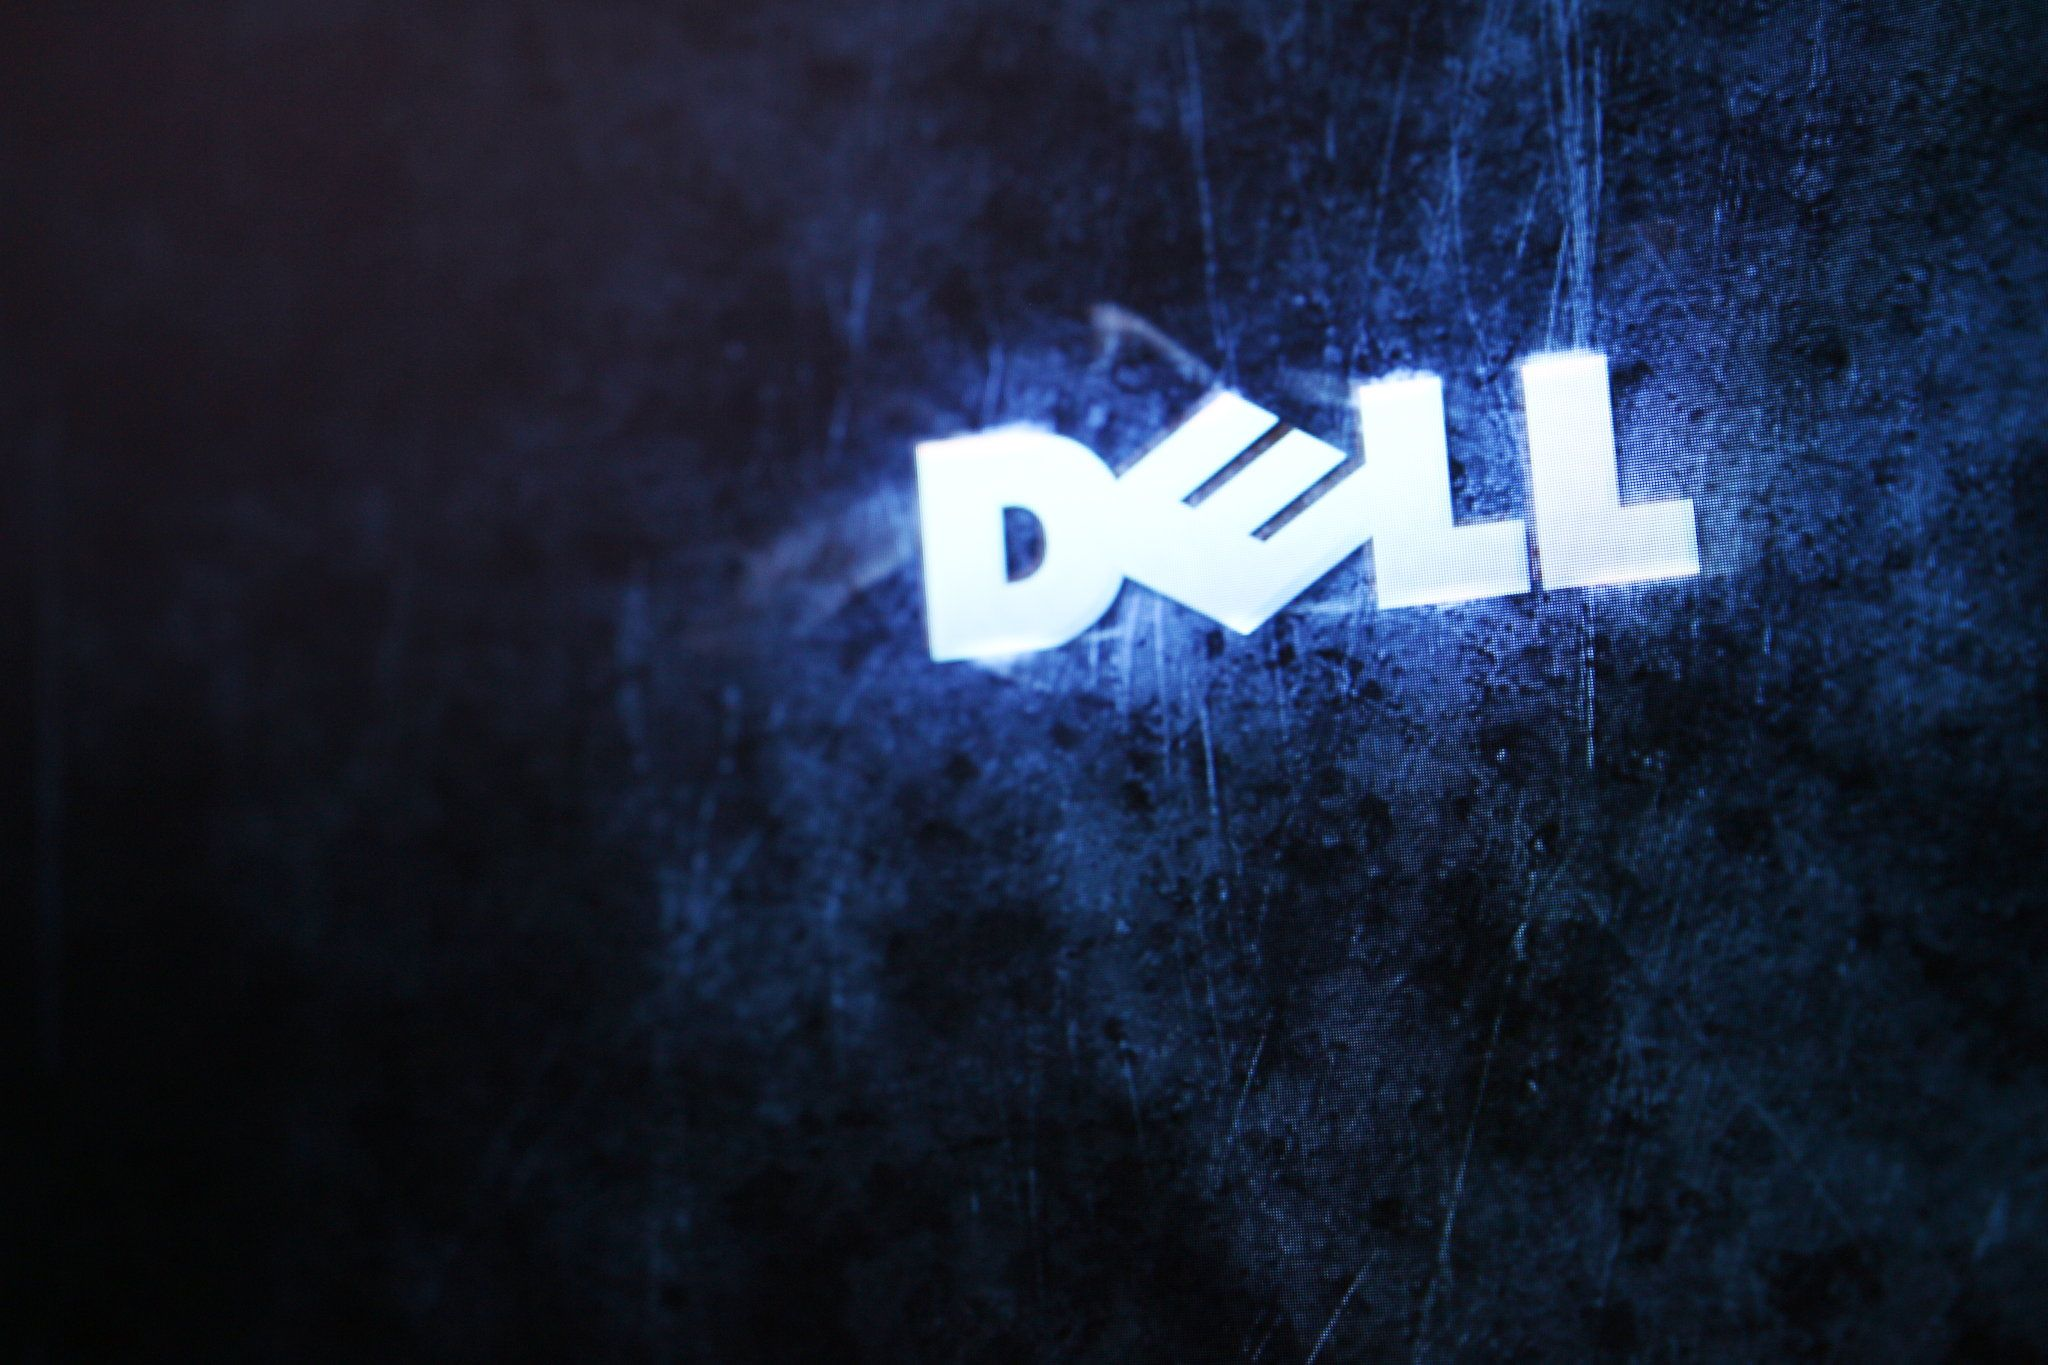 Hd Wallpapers For Dell Pc